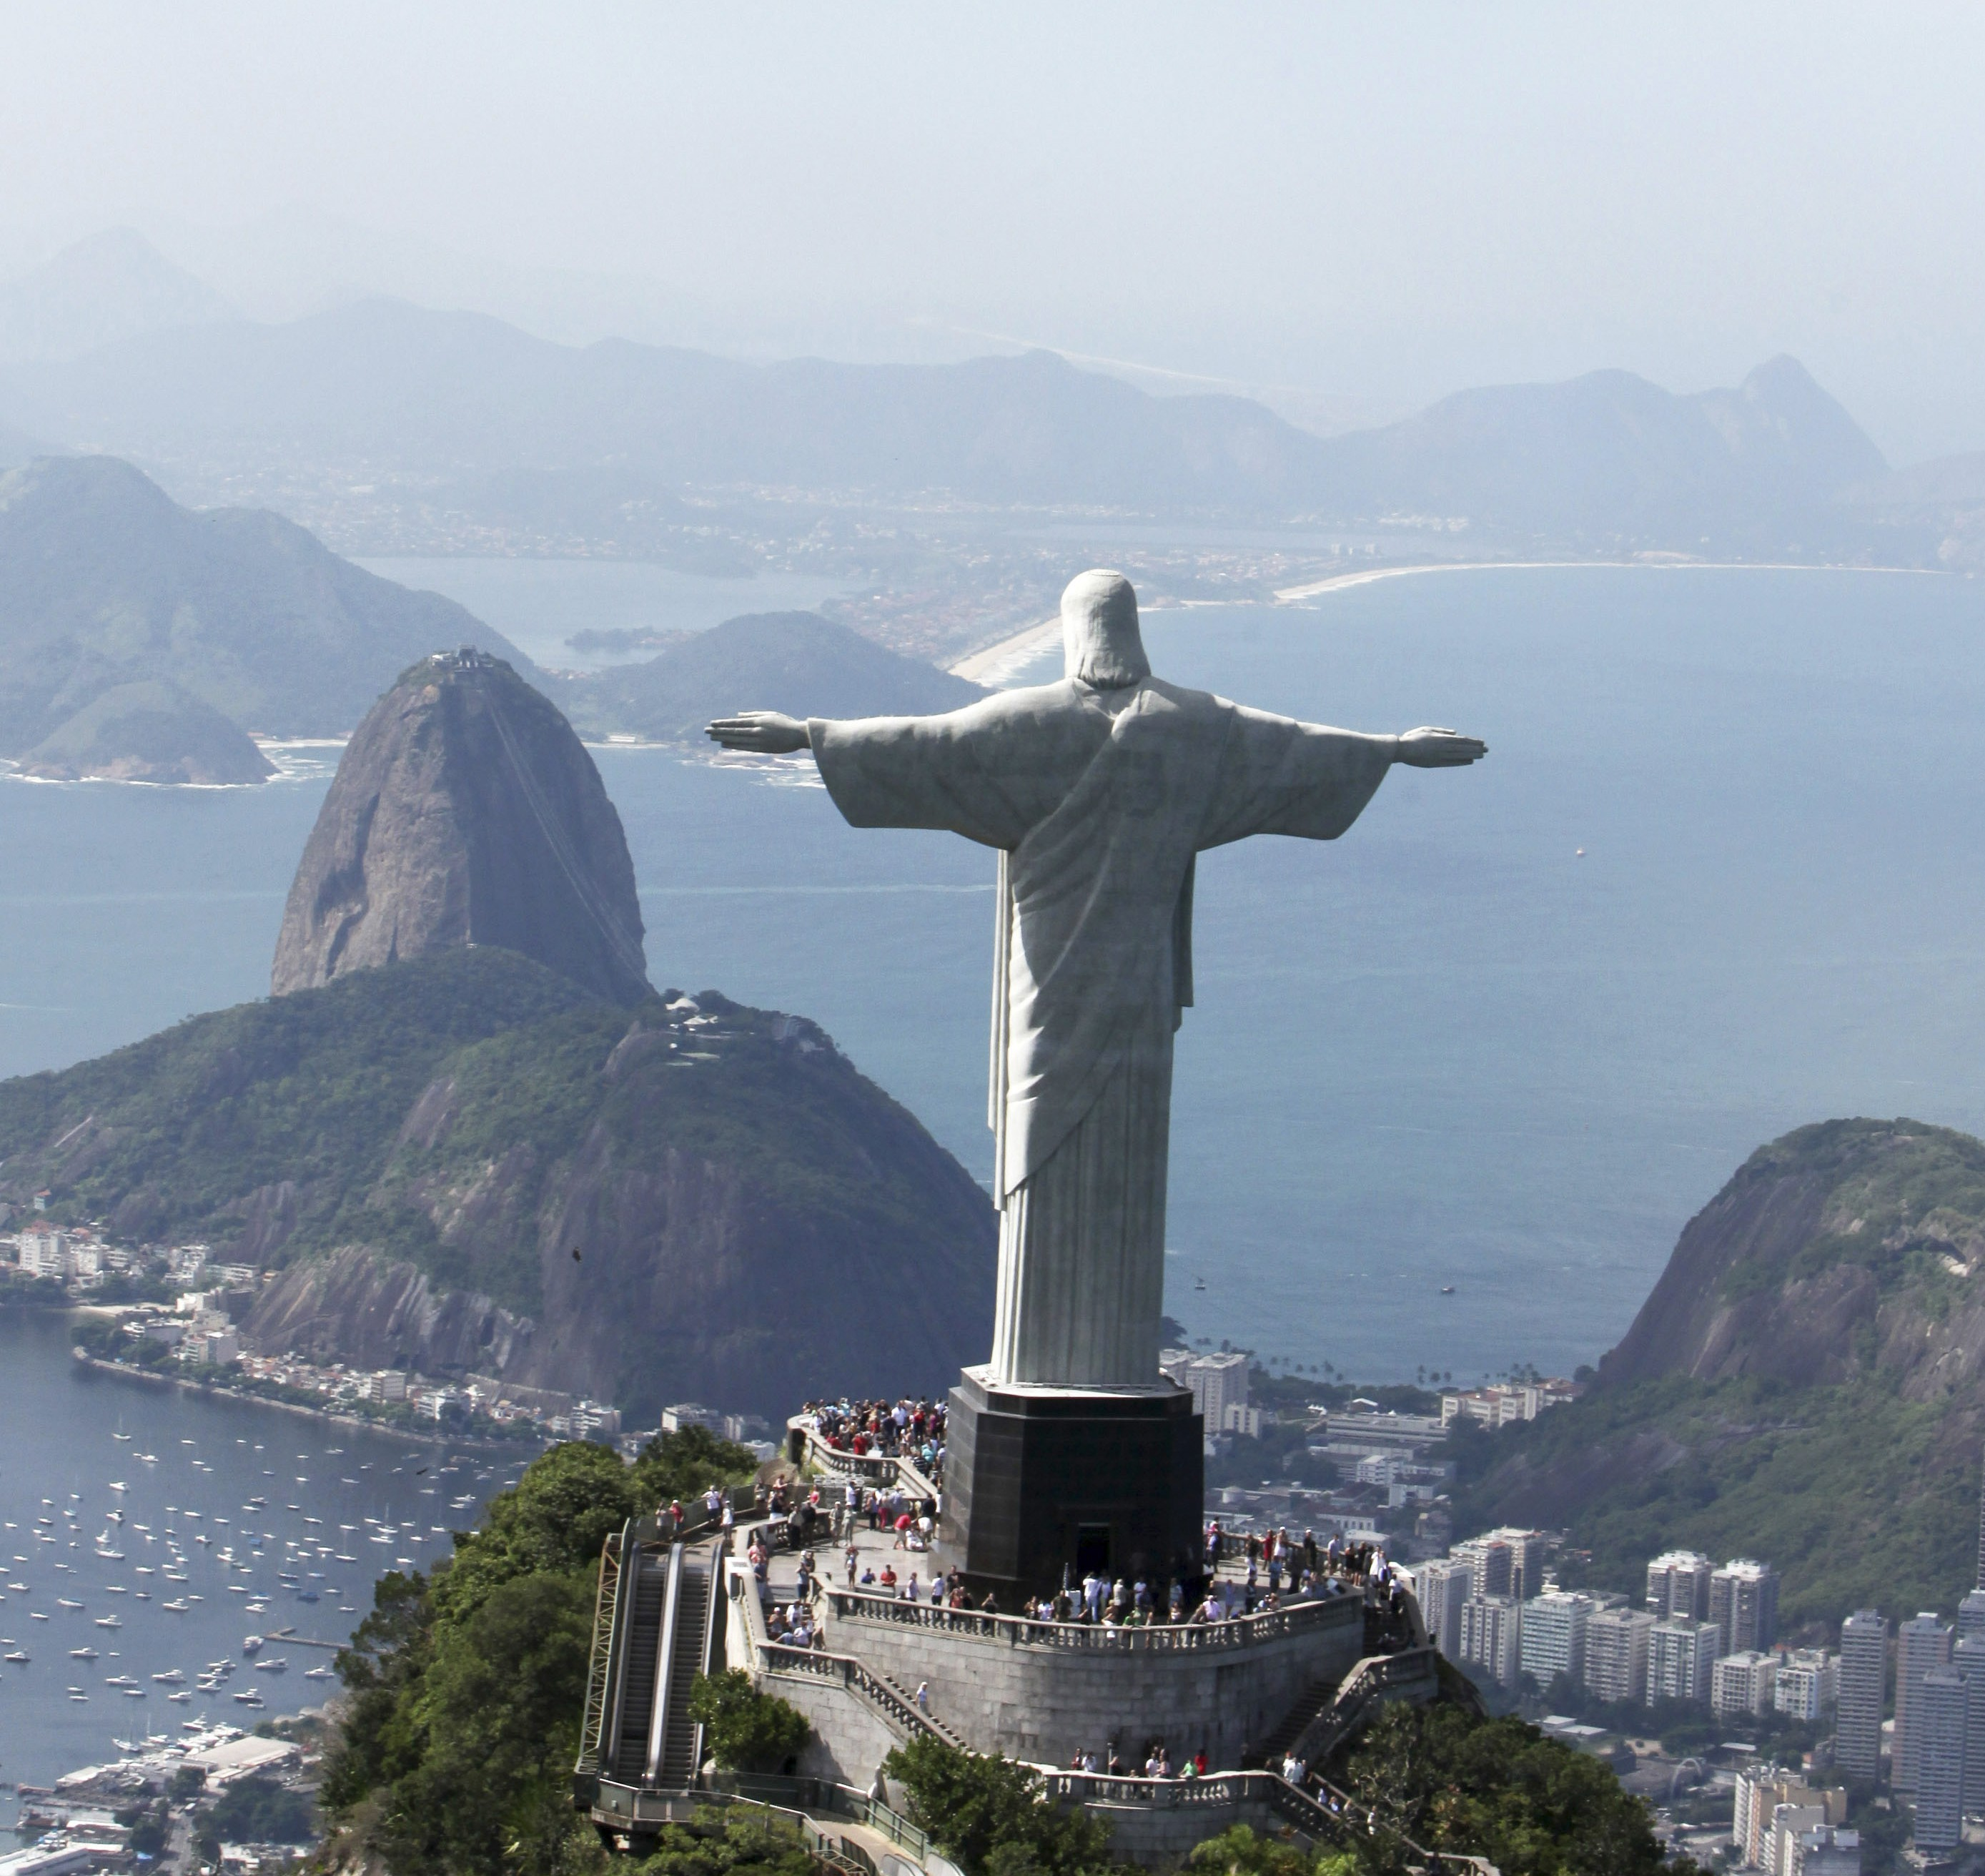 Christ the Redeemer statue, on Corcovado mountain in Rio